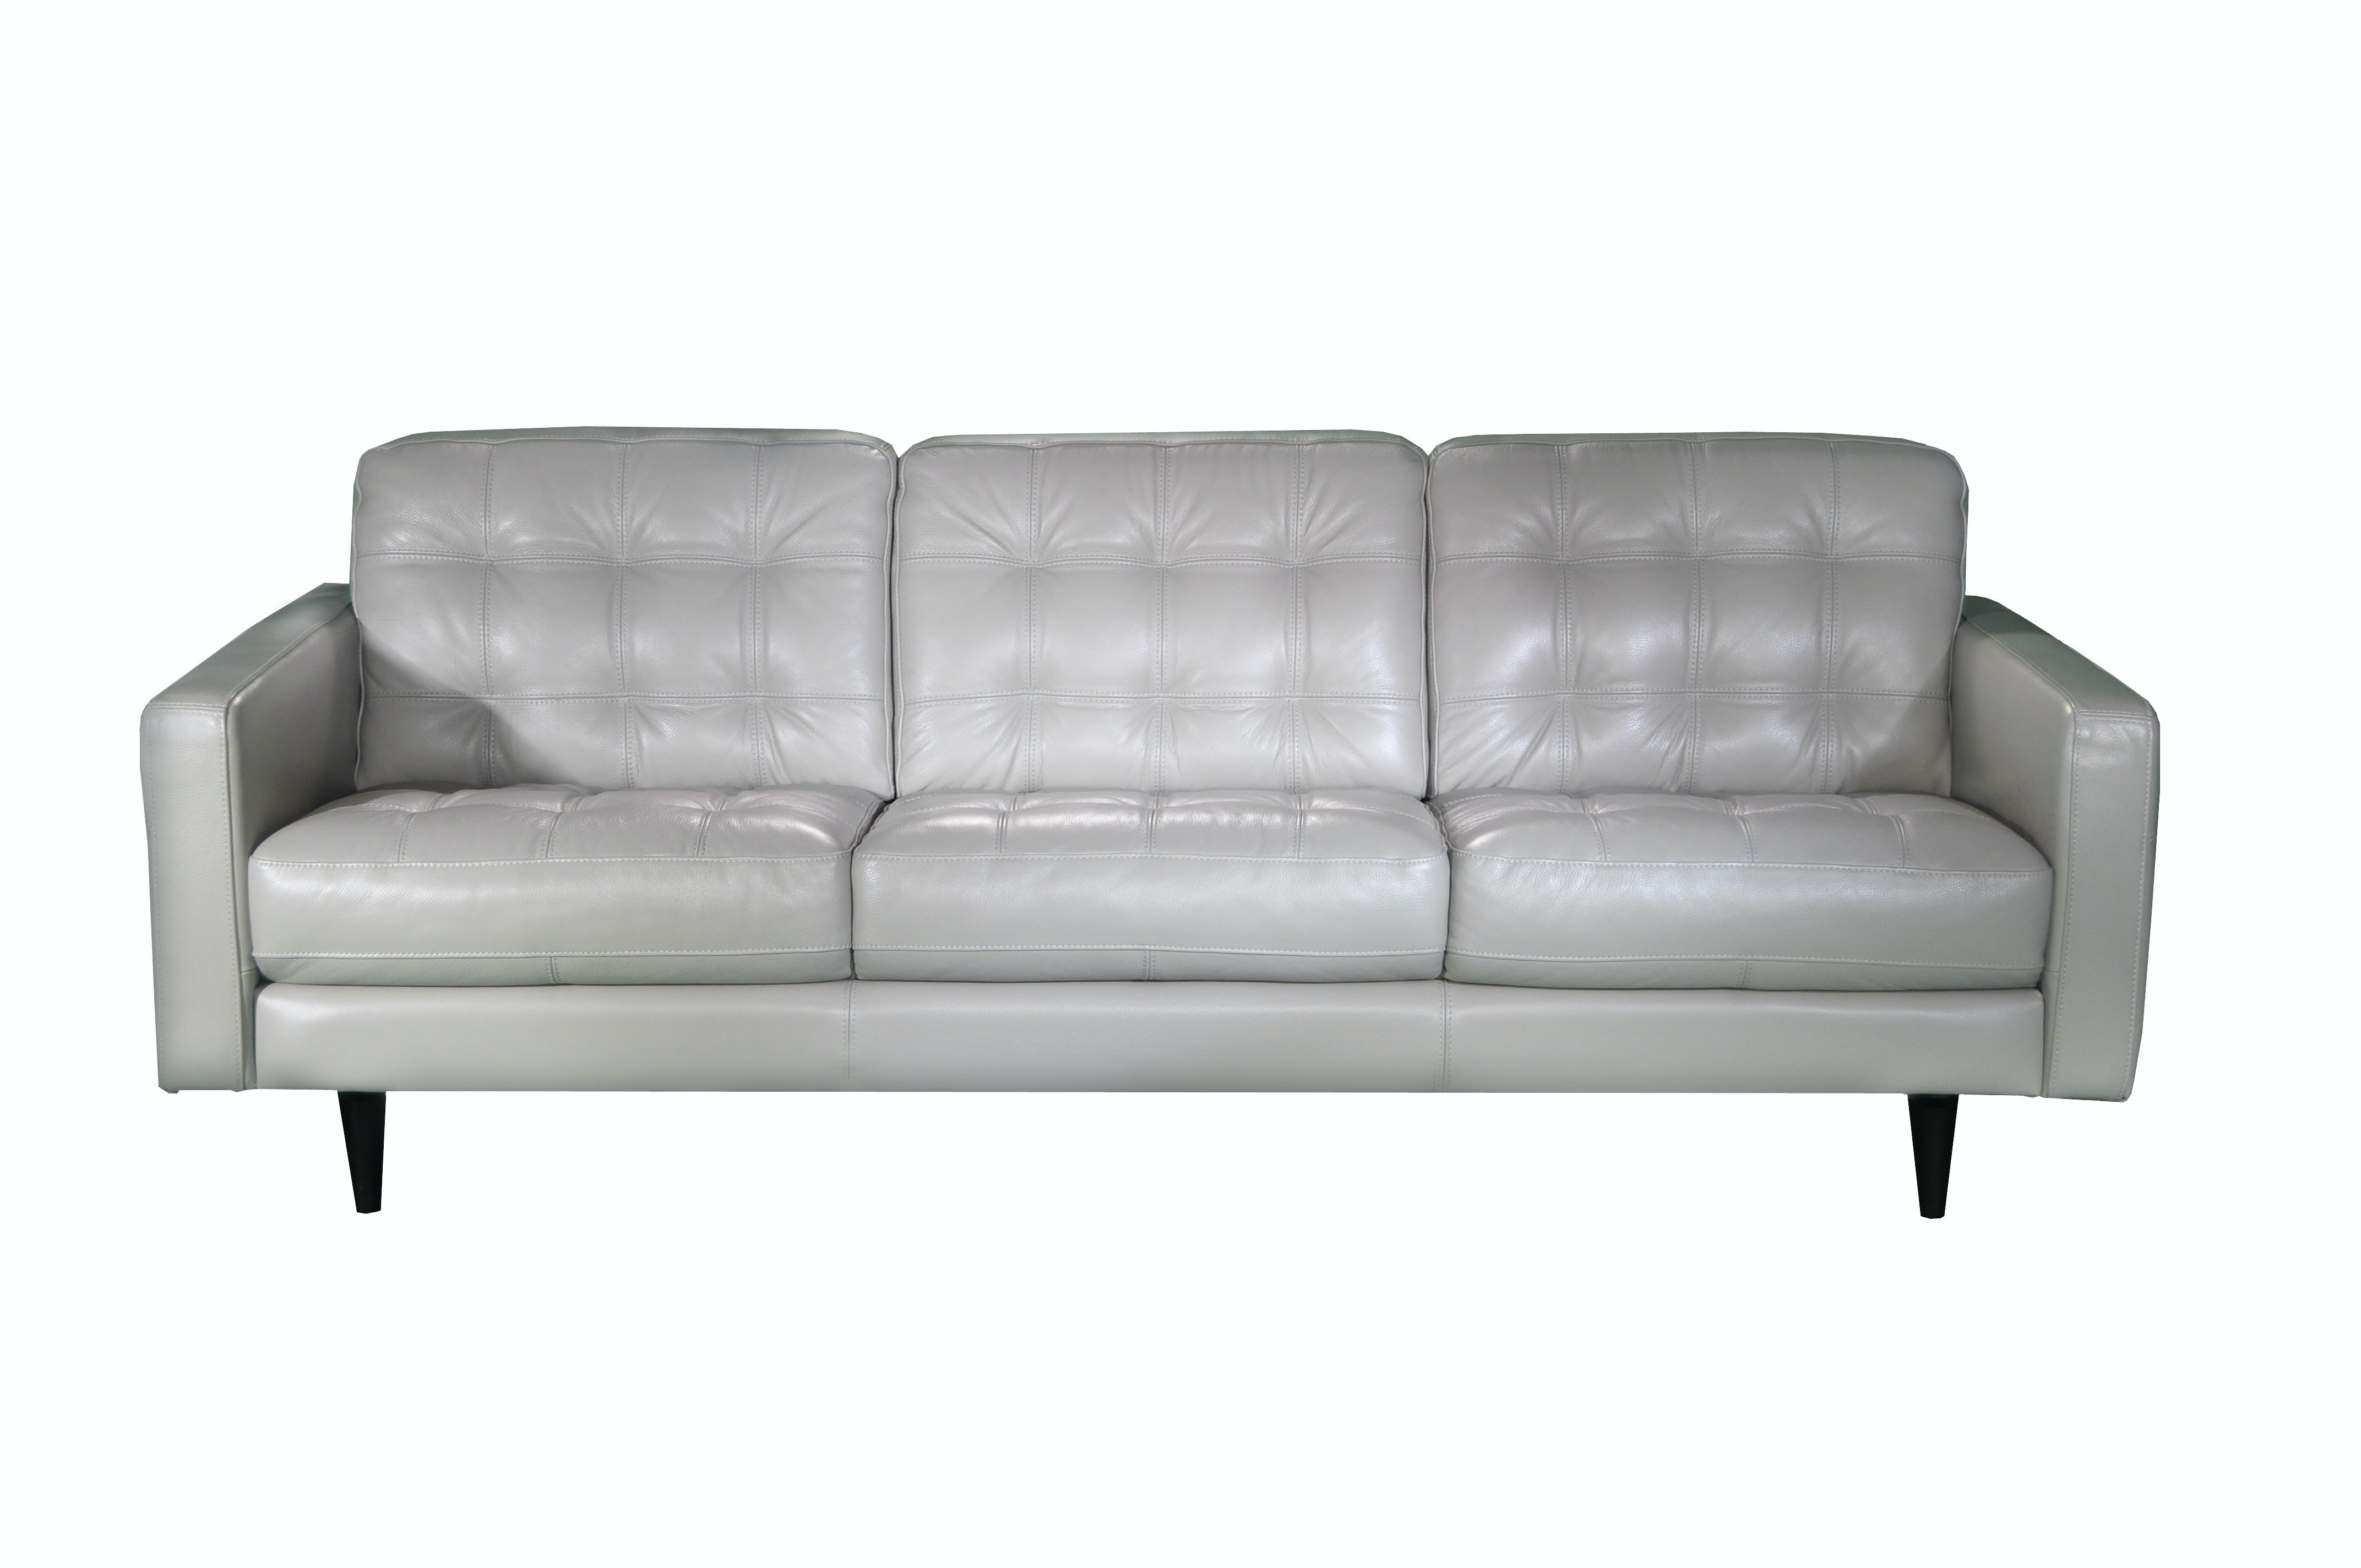 Tufted Sofas Huntingdon Loveseat 4 Lengths Soho Tufted